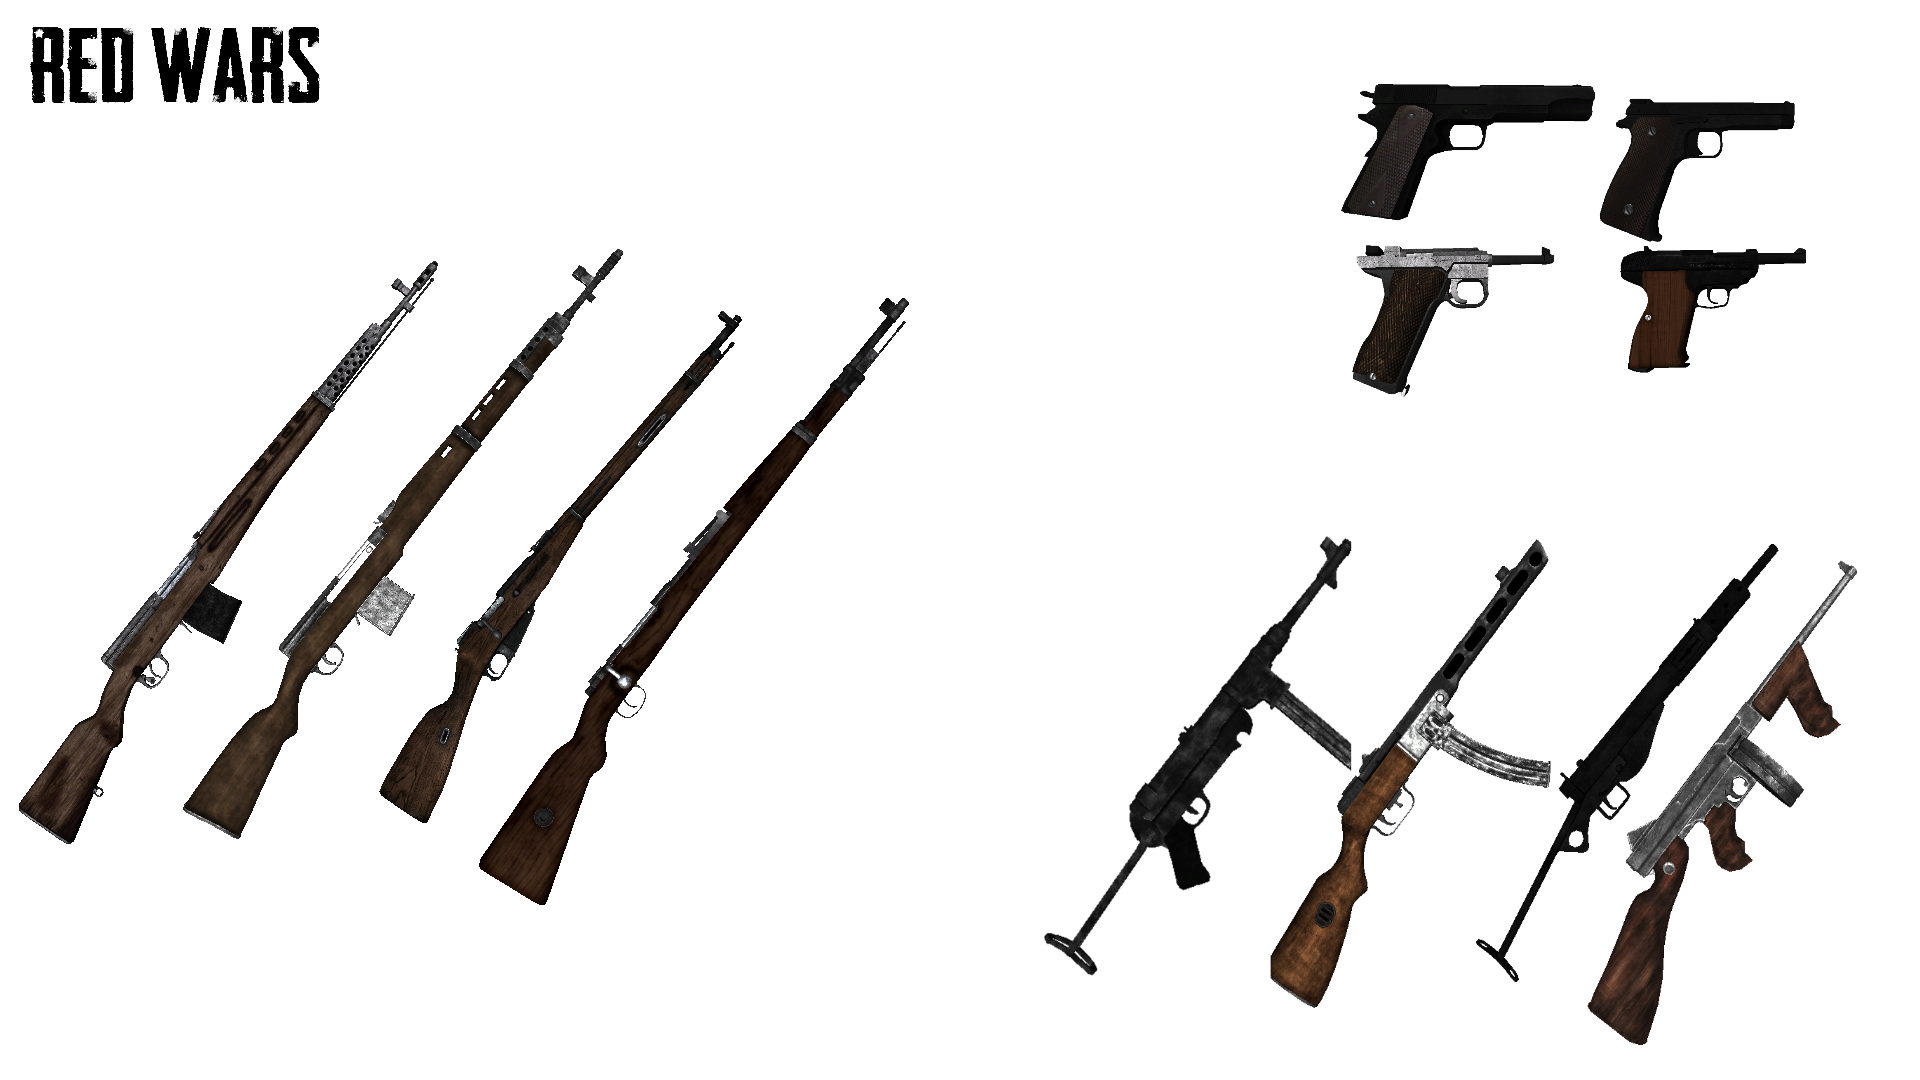 2 0weapons